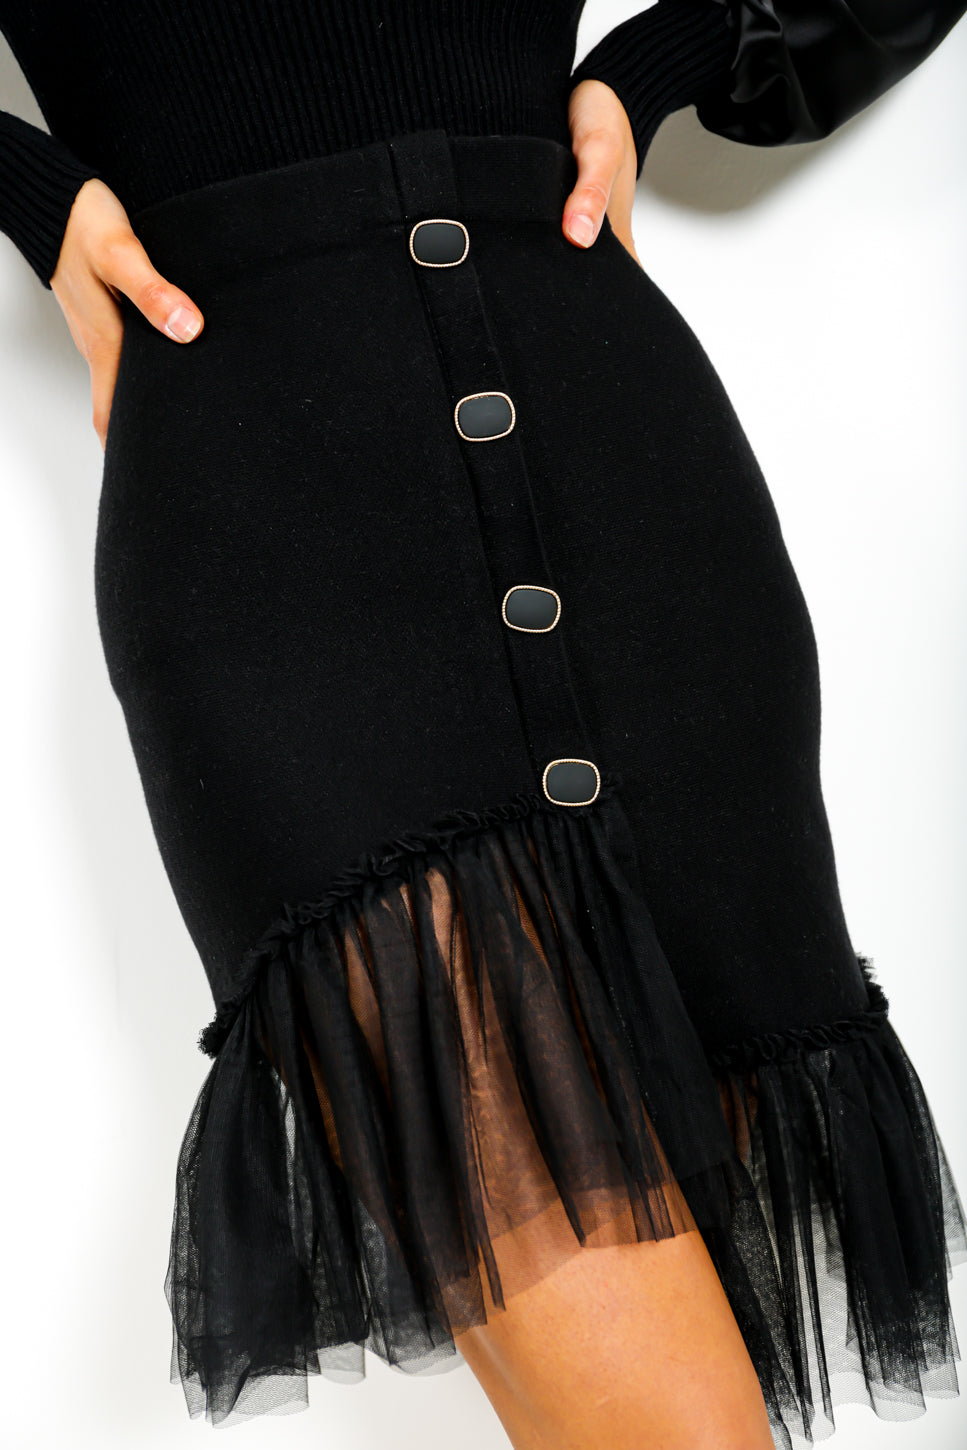 Mesh Behaviour - Midi Skirt In BLACK